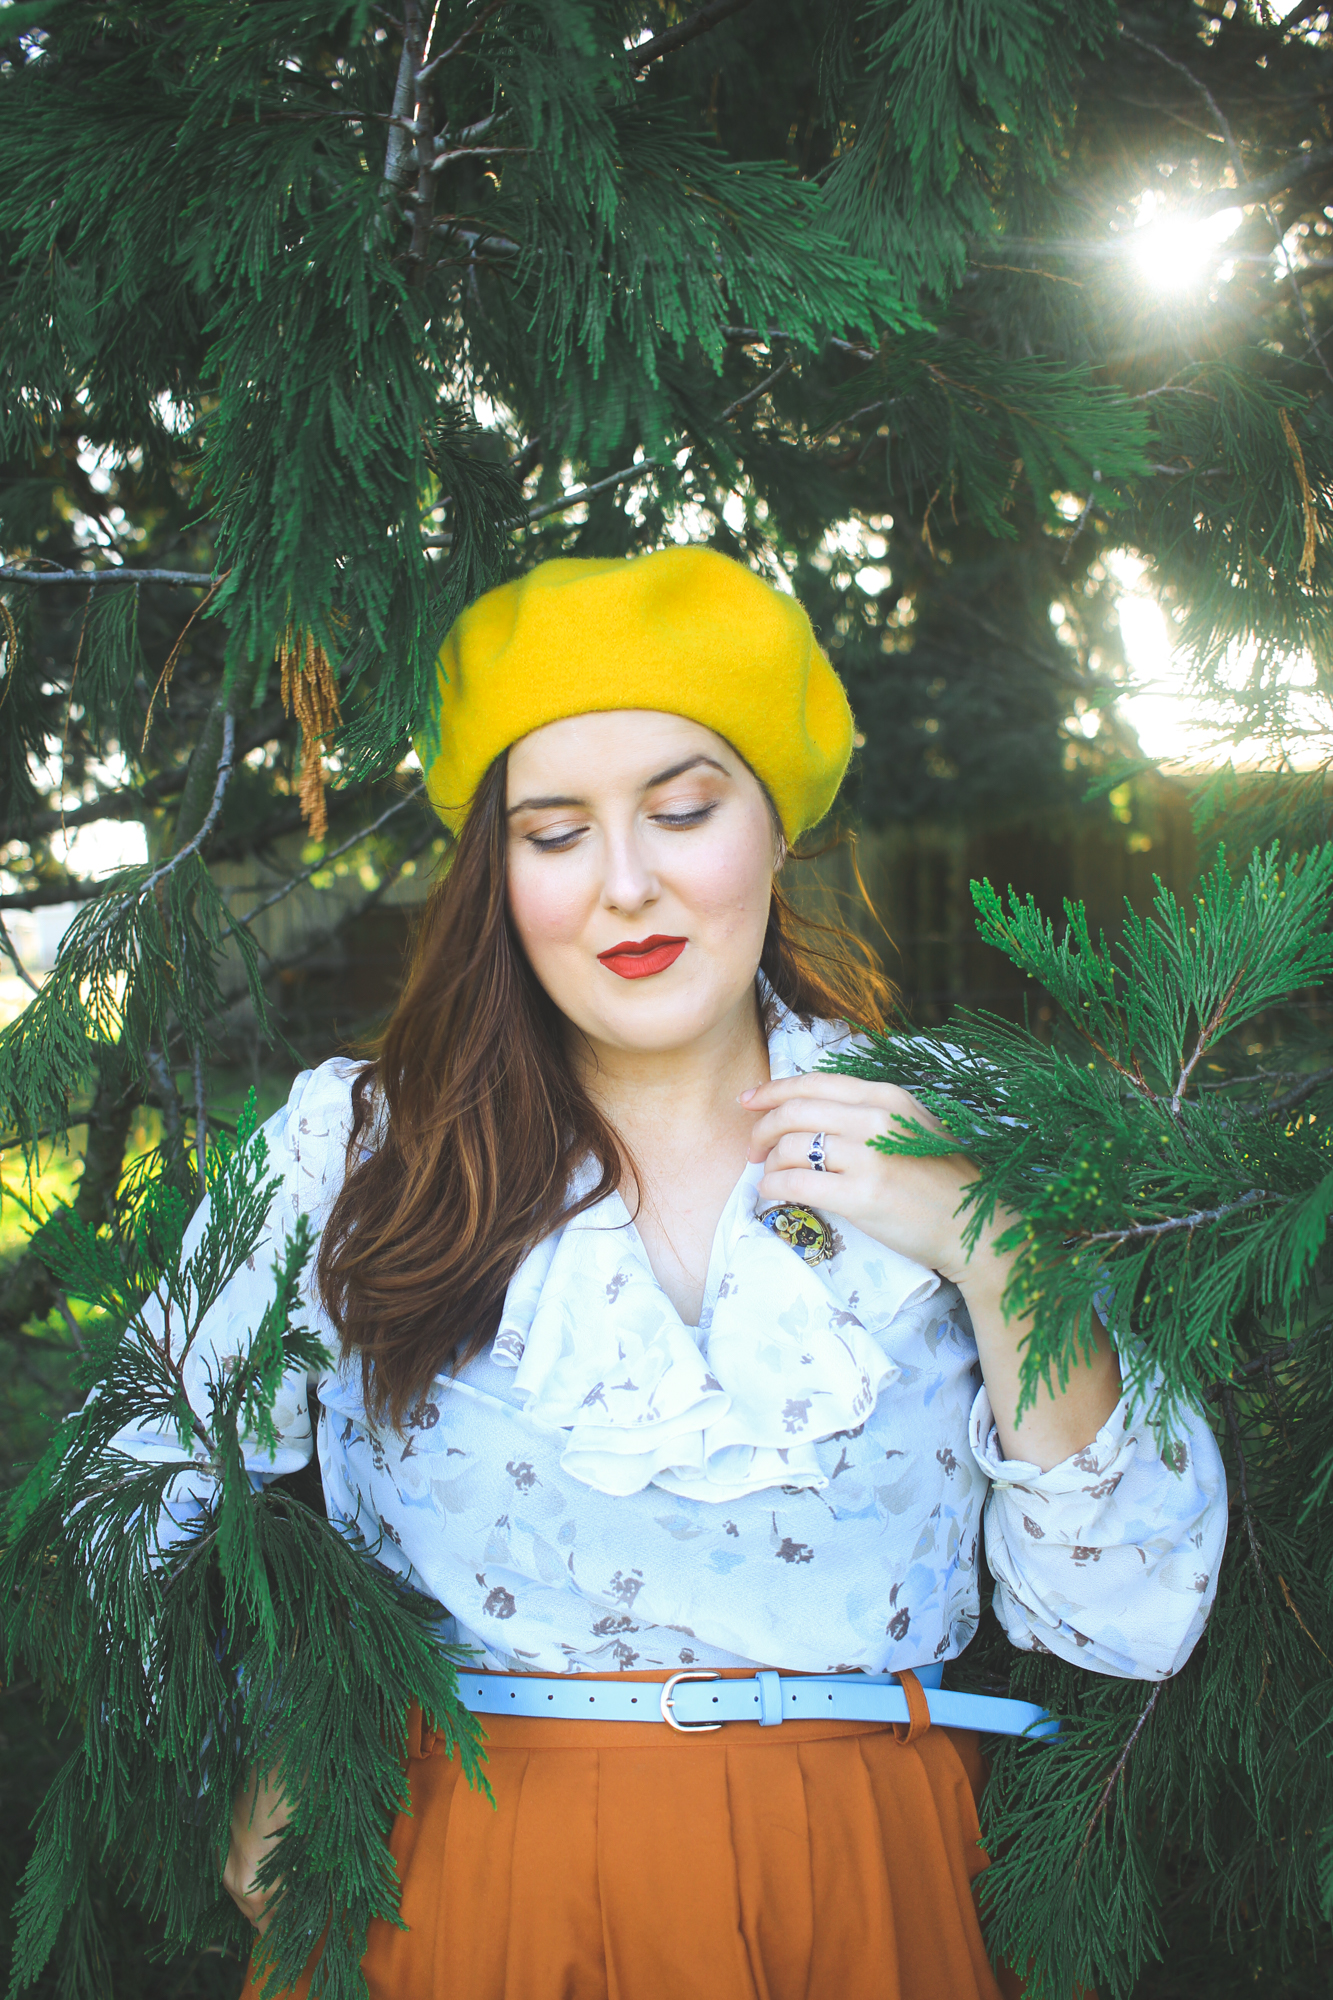 portrait of a woman in a yellow beret